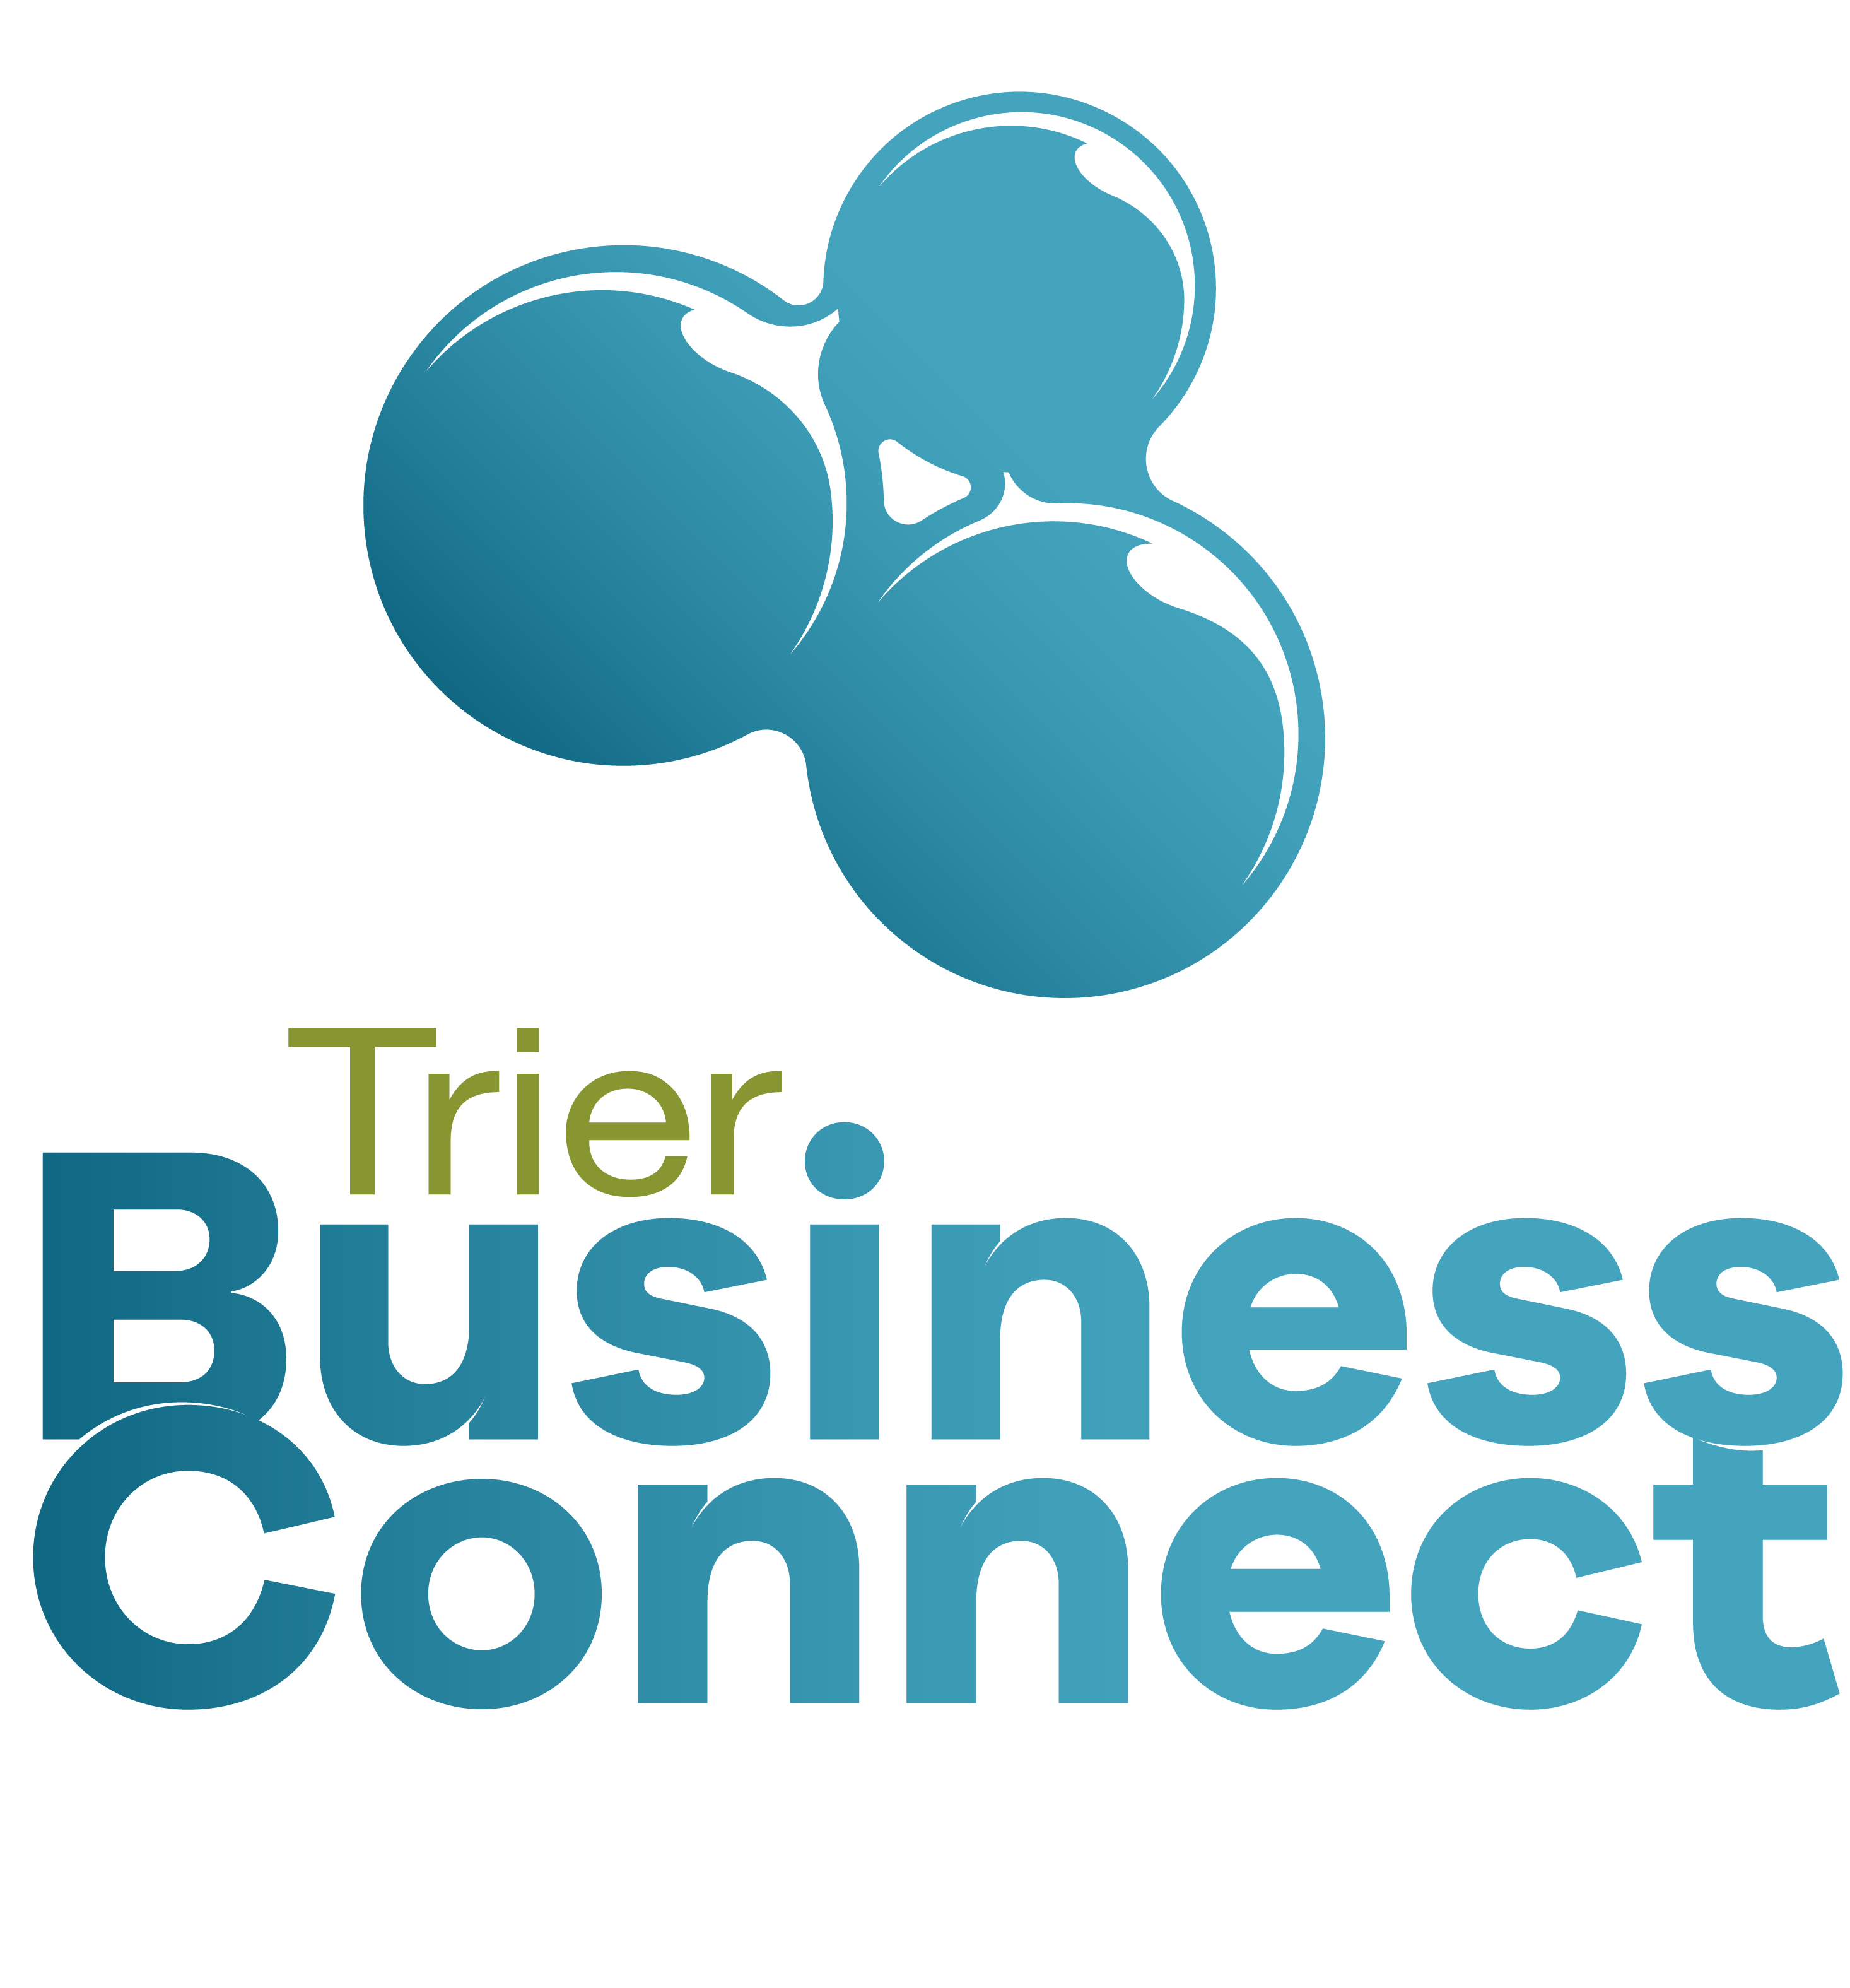 TRIER - BUSINESS CONNECT